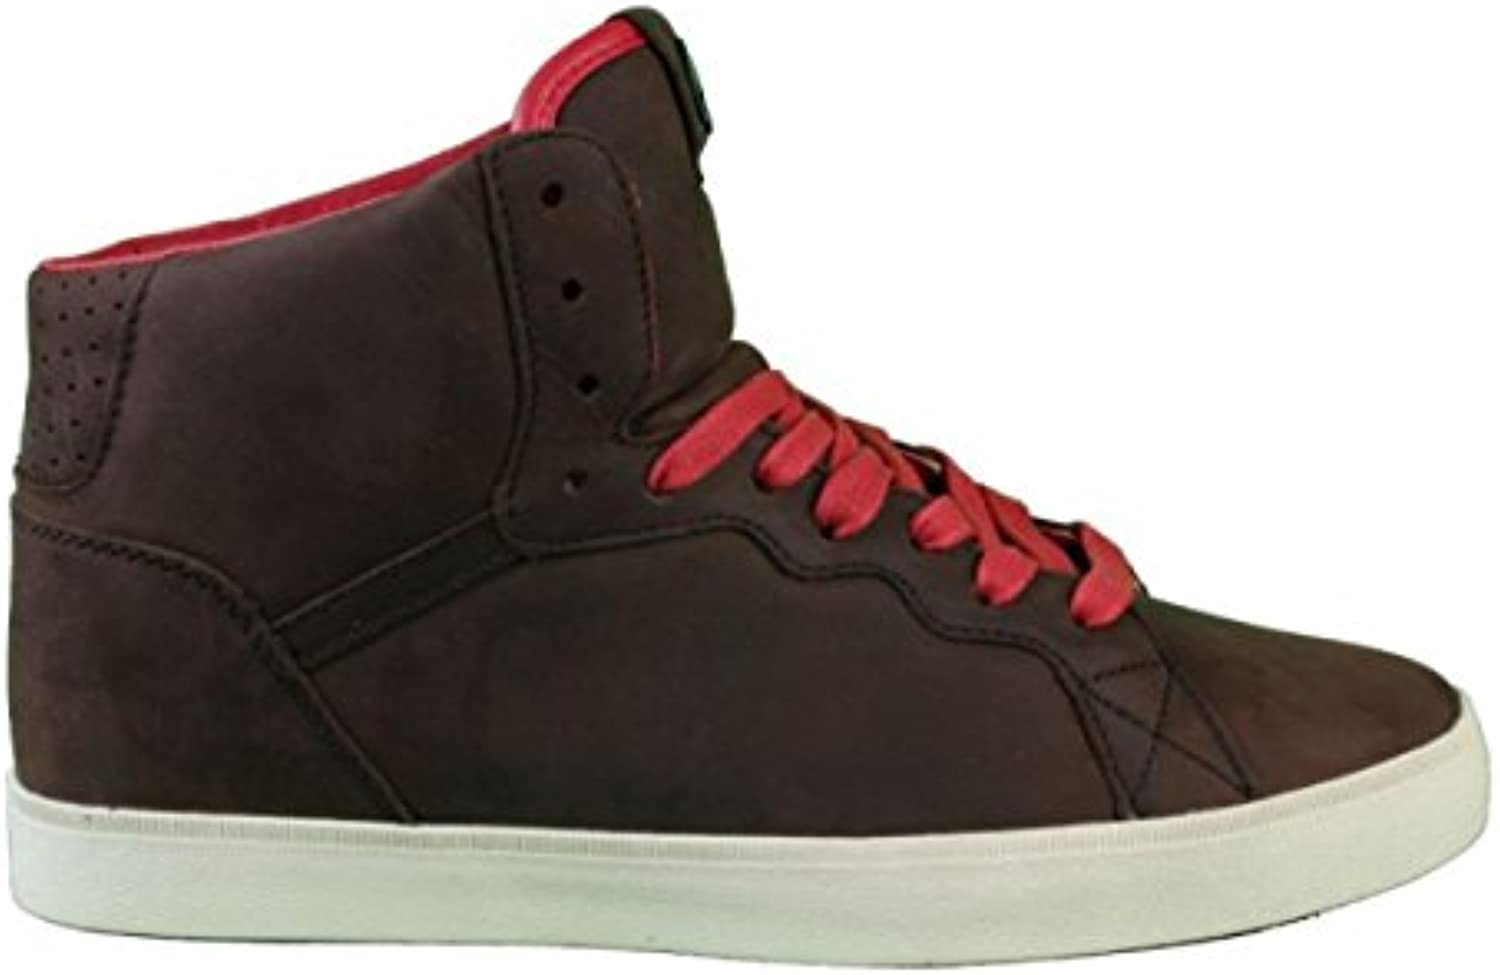 Osiris Skate shoes -- Ground High-- Brown/Red/Cream  -